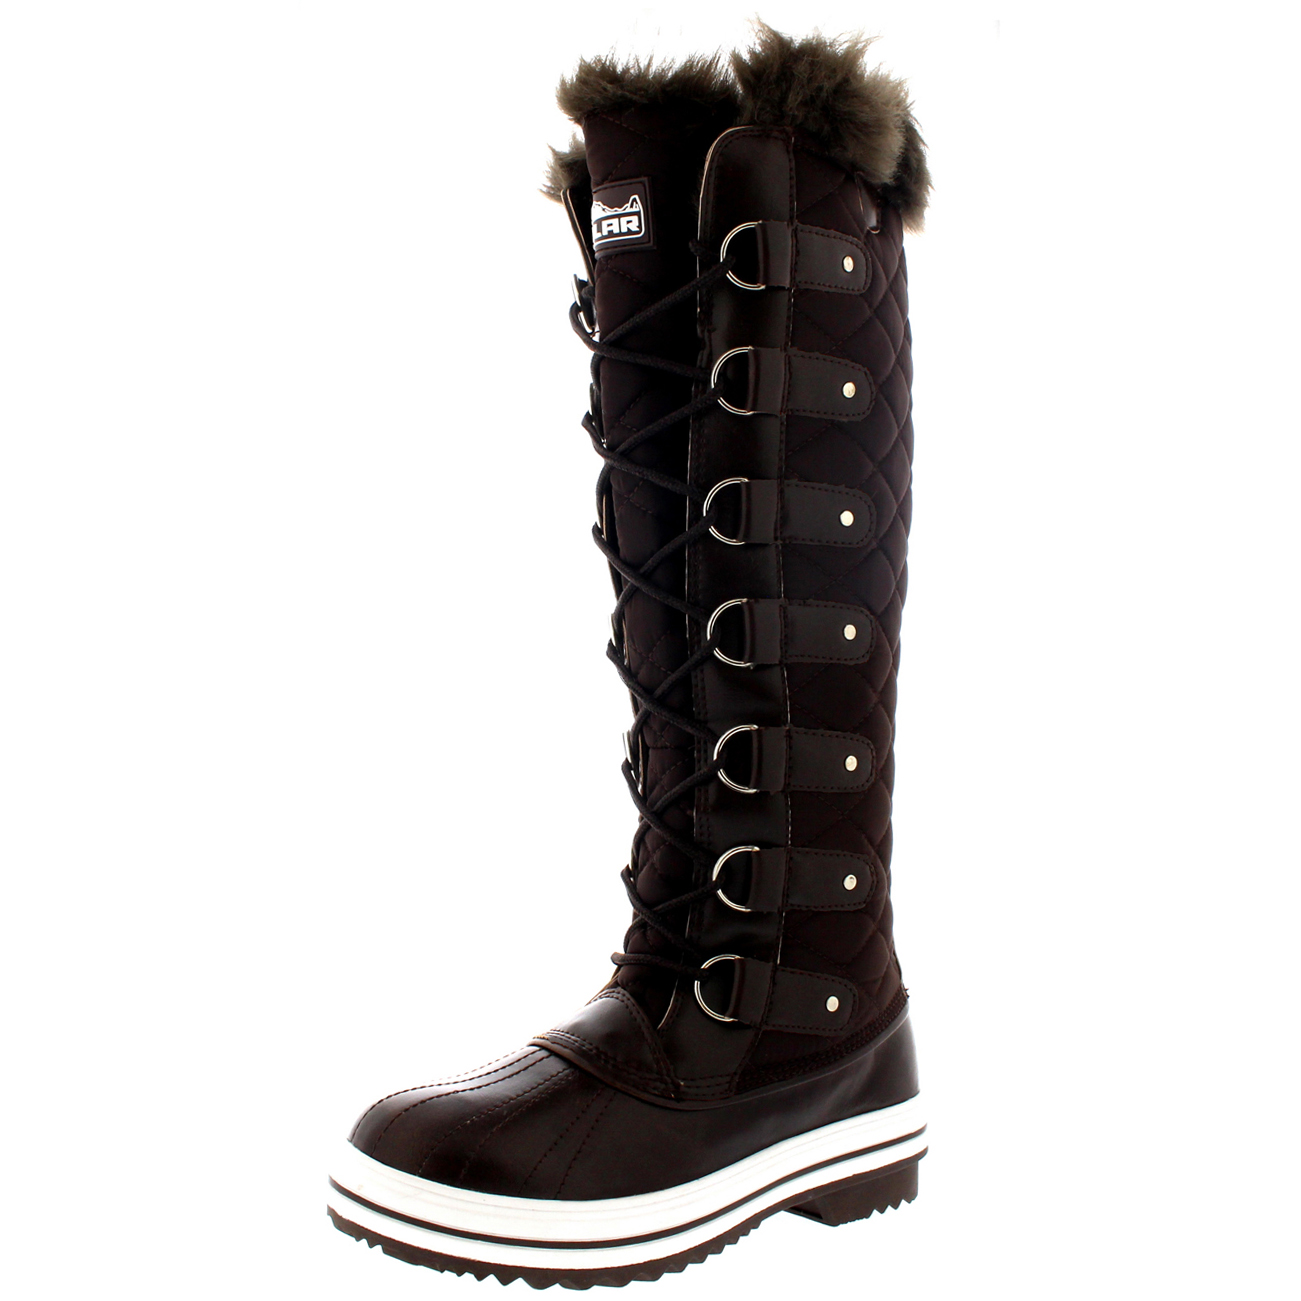 Womens Quilted Knee High Duck Fur Lined Rain Lace Up Muck Snow ... : quilted winter boots - Adamdwight.com